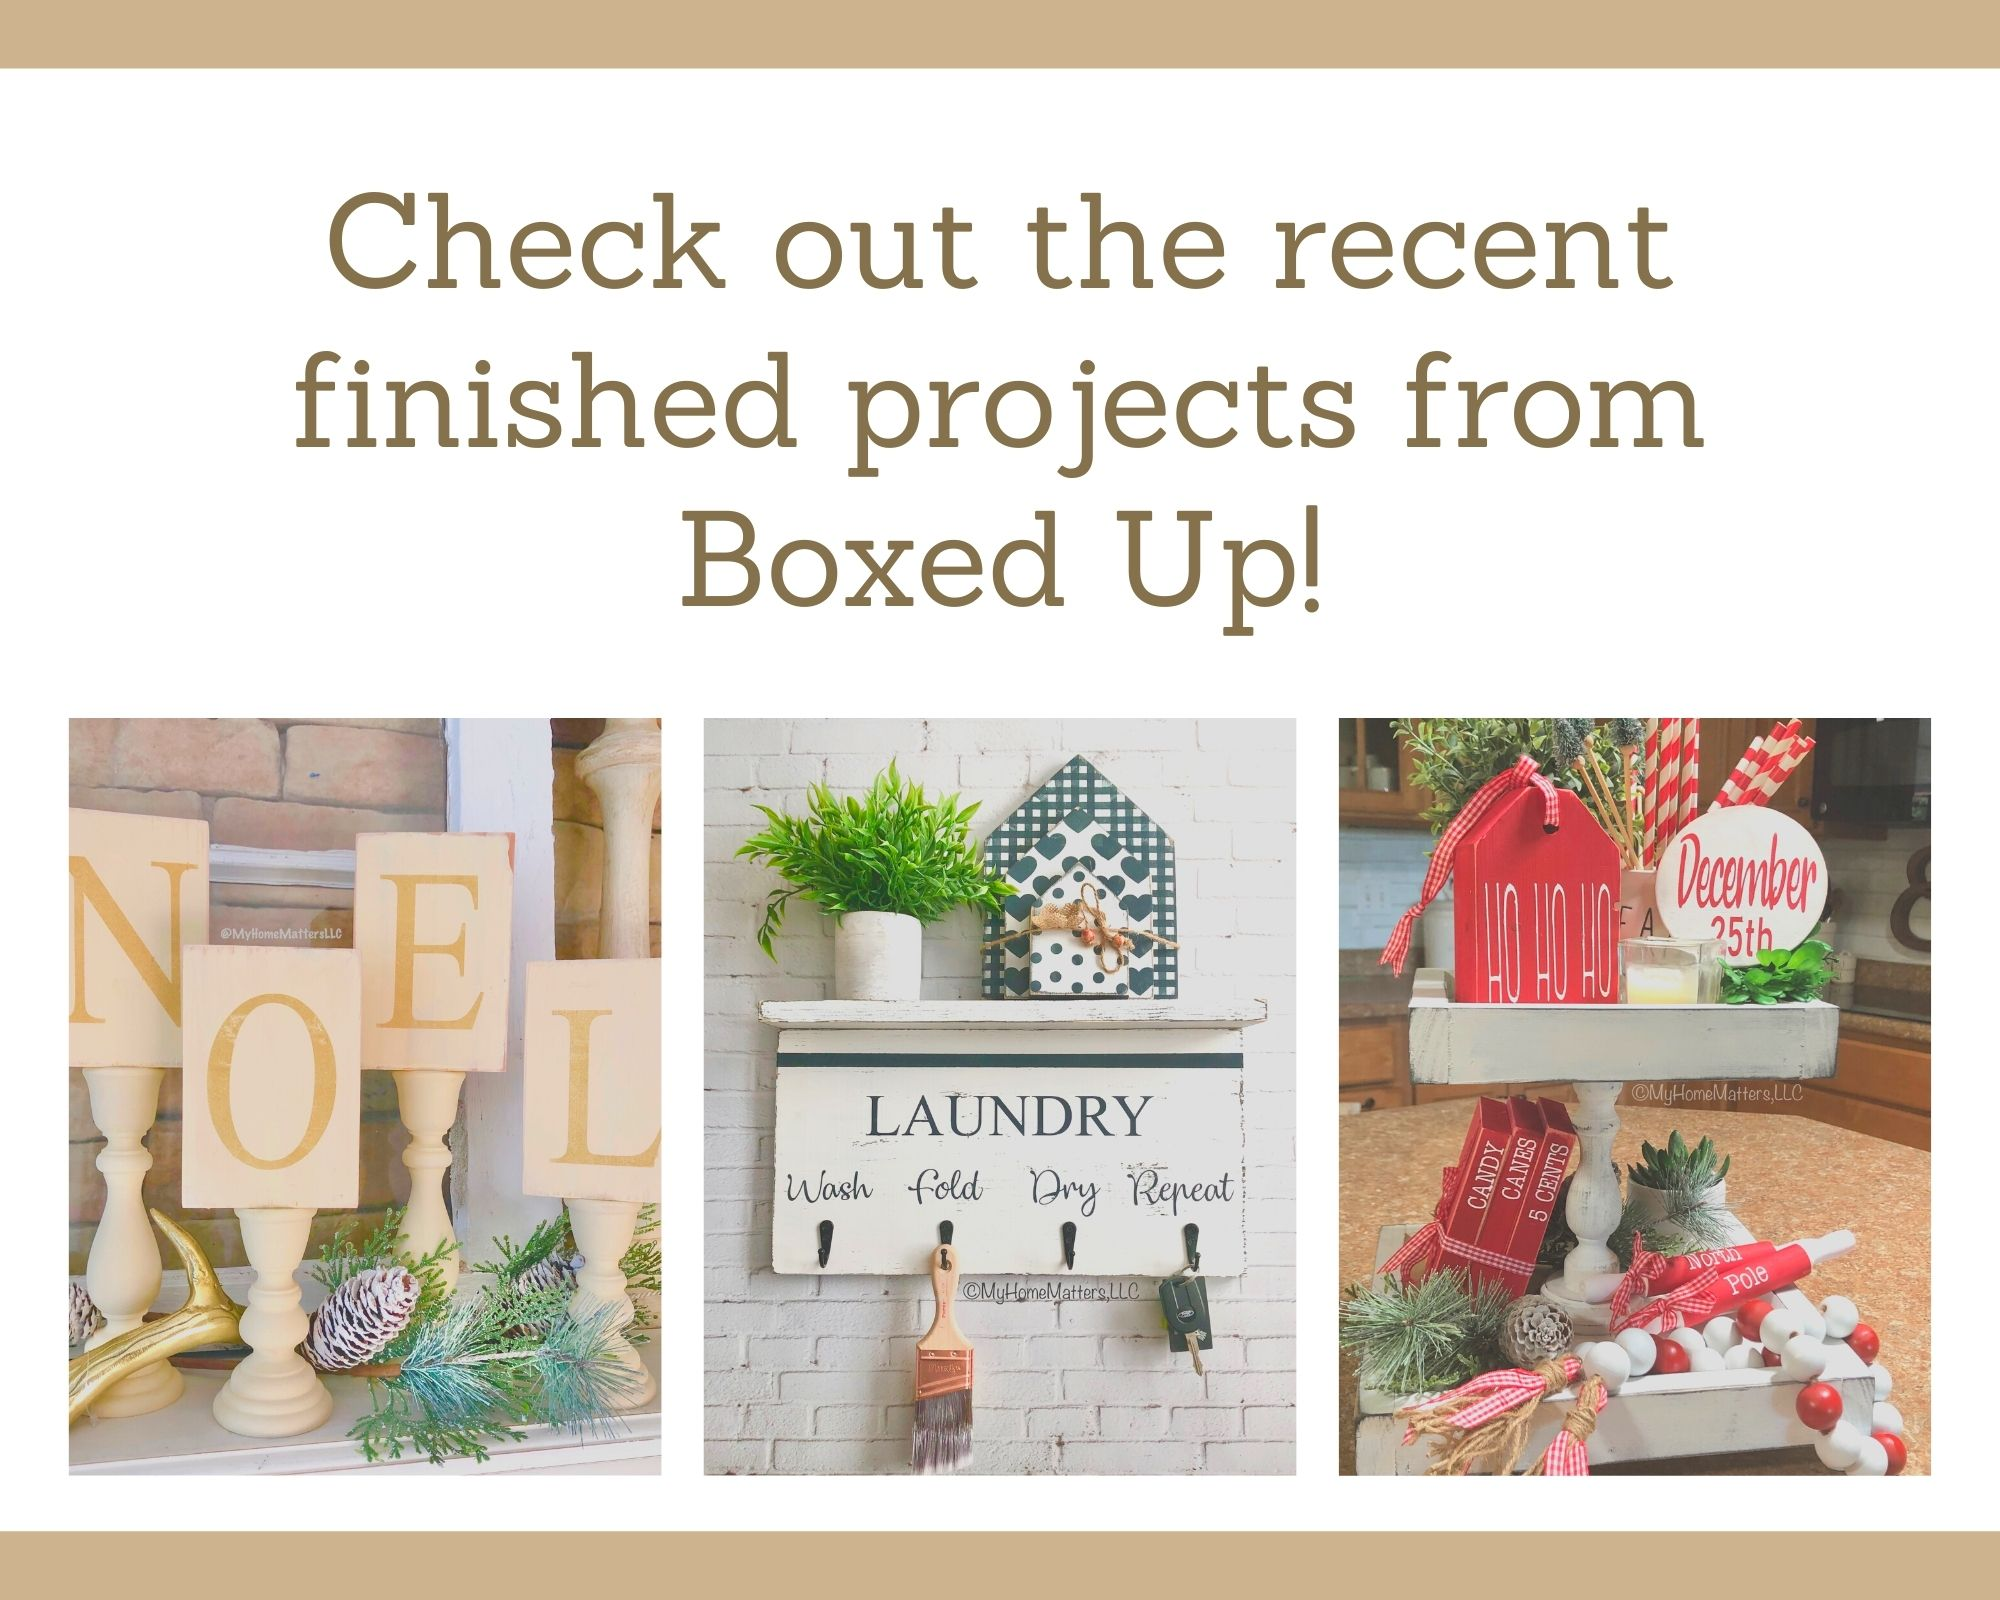 Check out the recent finished projects from Boxed Up!